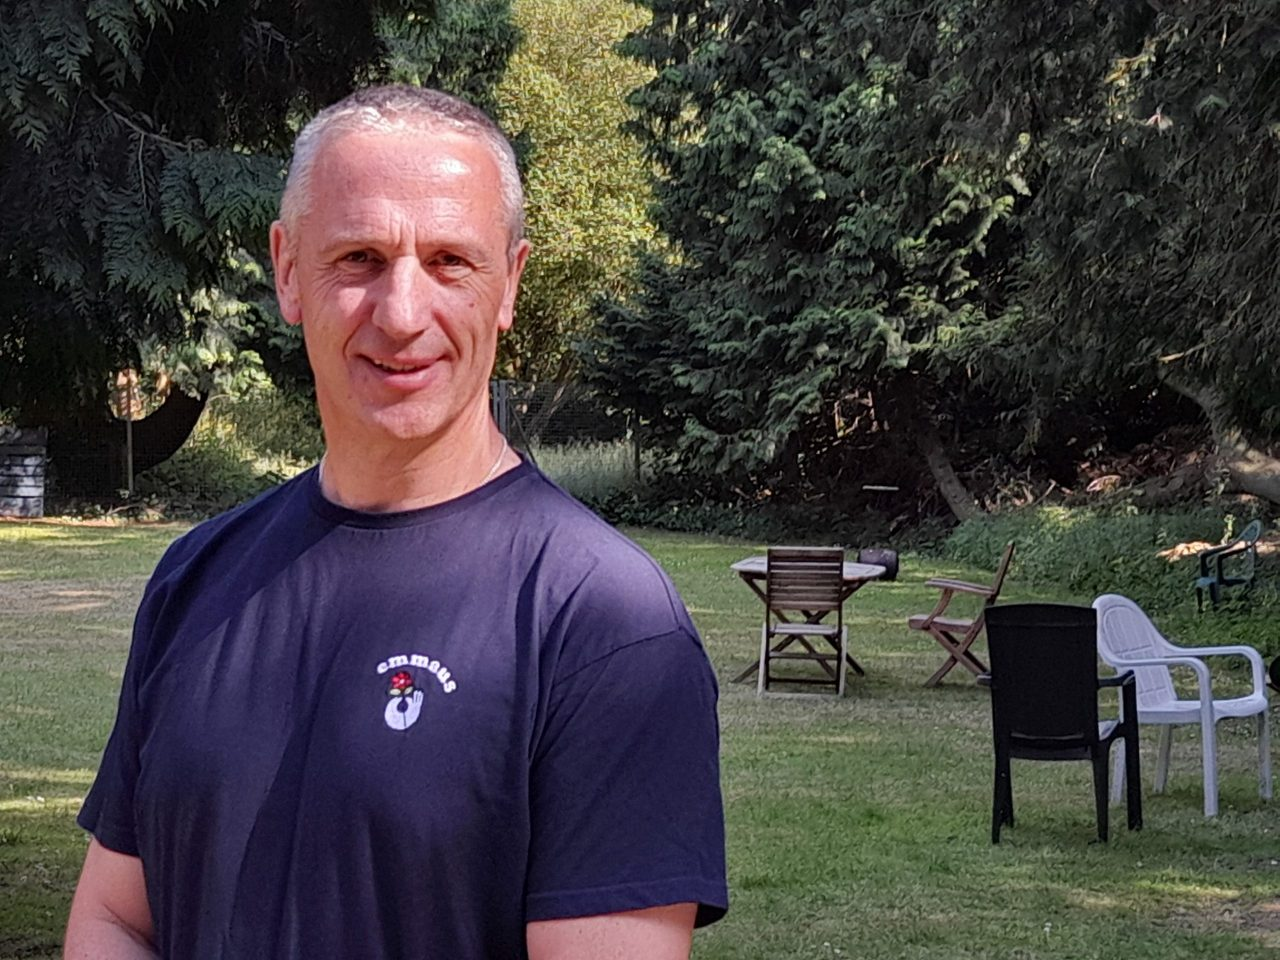 Emmaus Hertfordshire appoints new Chief Executive